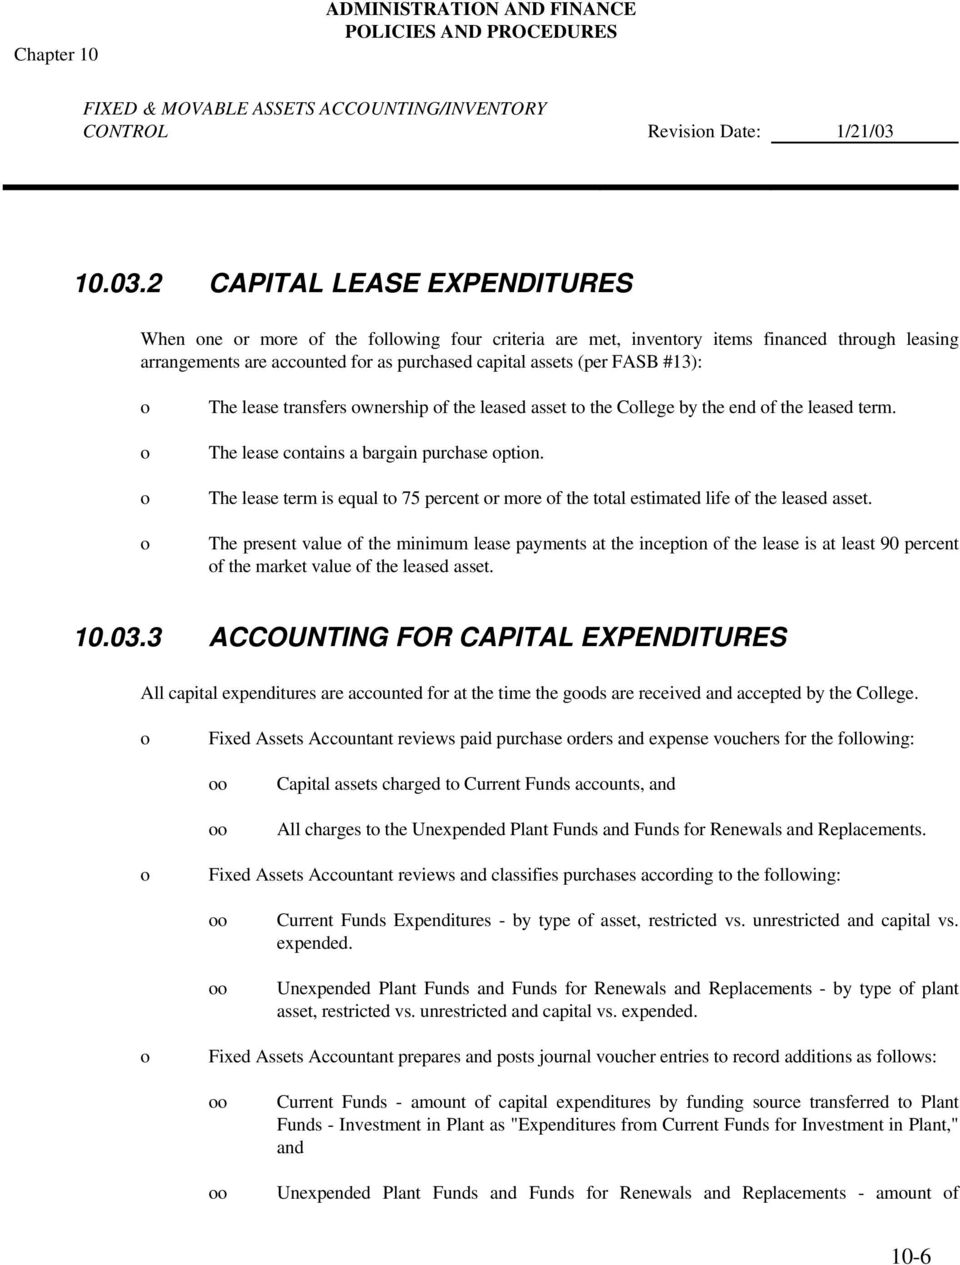 2 CAPITAL LEASE EXPENDITURES When ne r mre f the fllwing fur criteria are met, inventry items financed thrugh leasing arrangements are accunted fr as purchased capital assets (per FASB #13): The